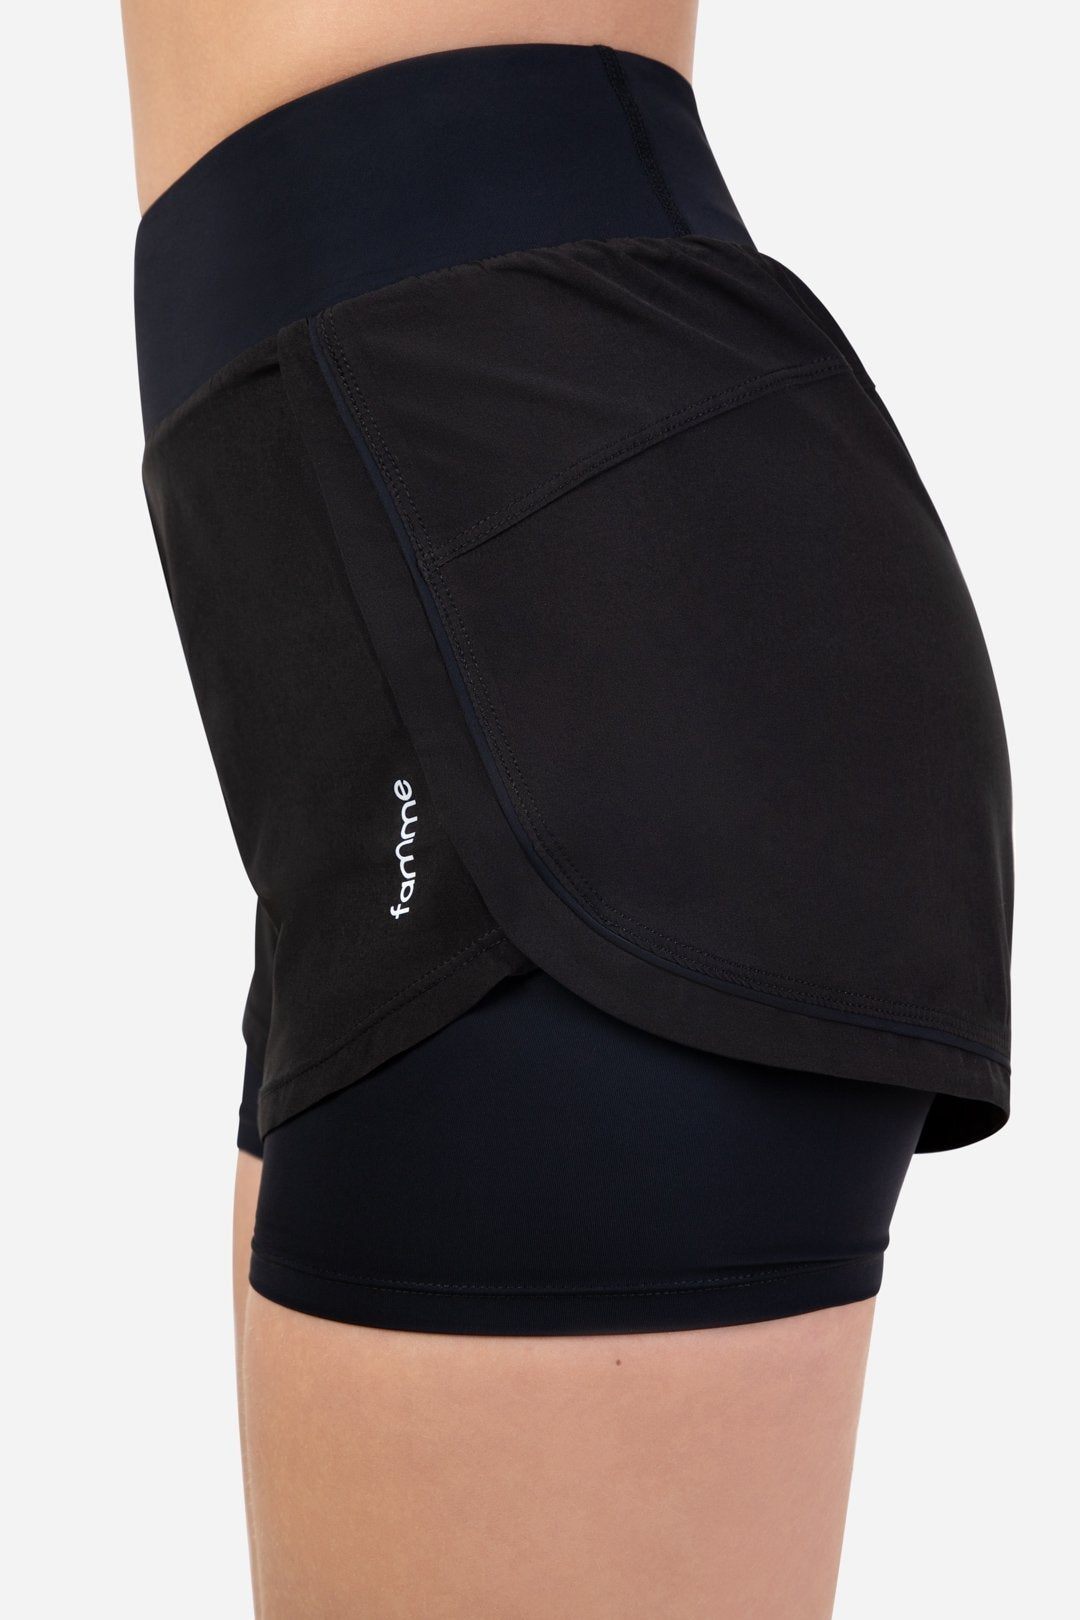 Black running shorts with two layers for good comfort